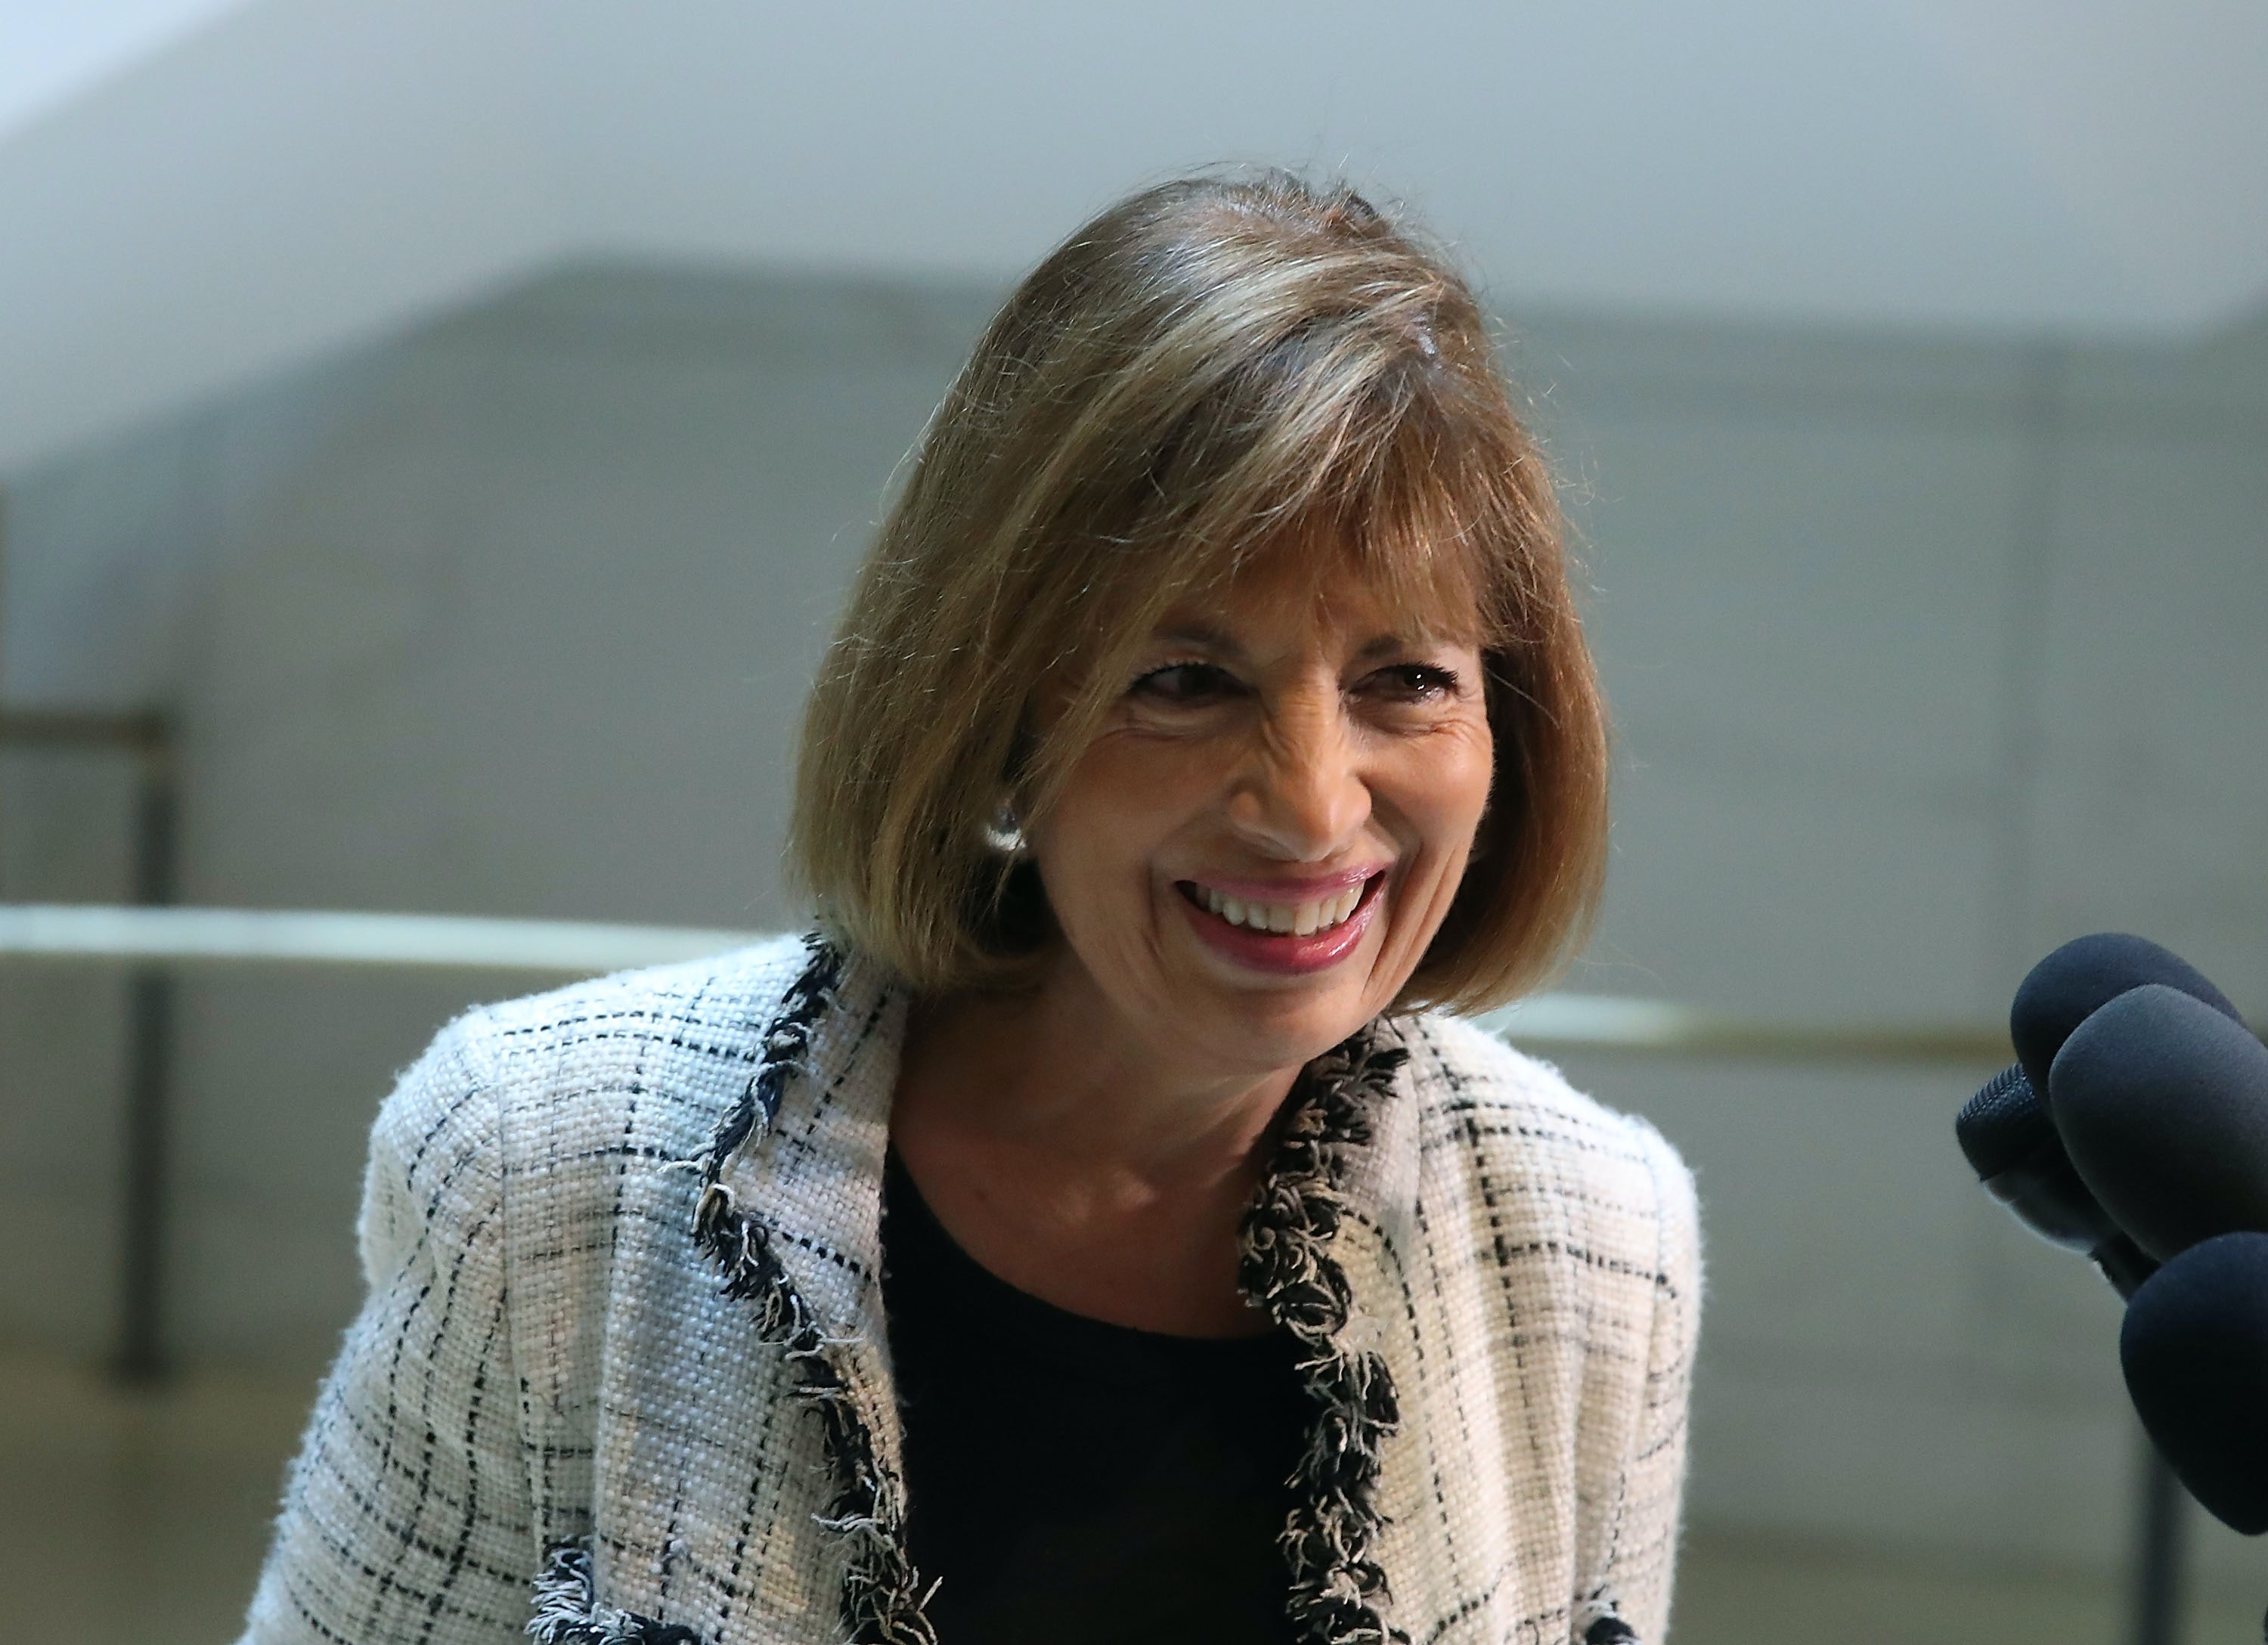 Rep. Speier Reveals How She Was Sexually Harassed on Capitol Hill